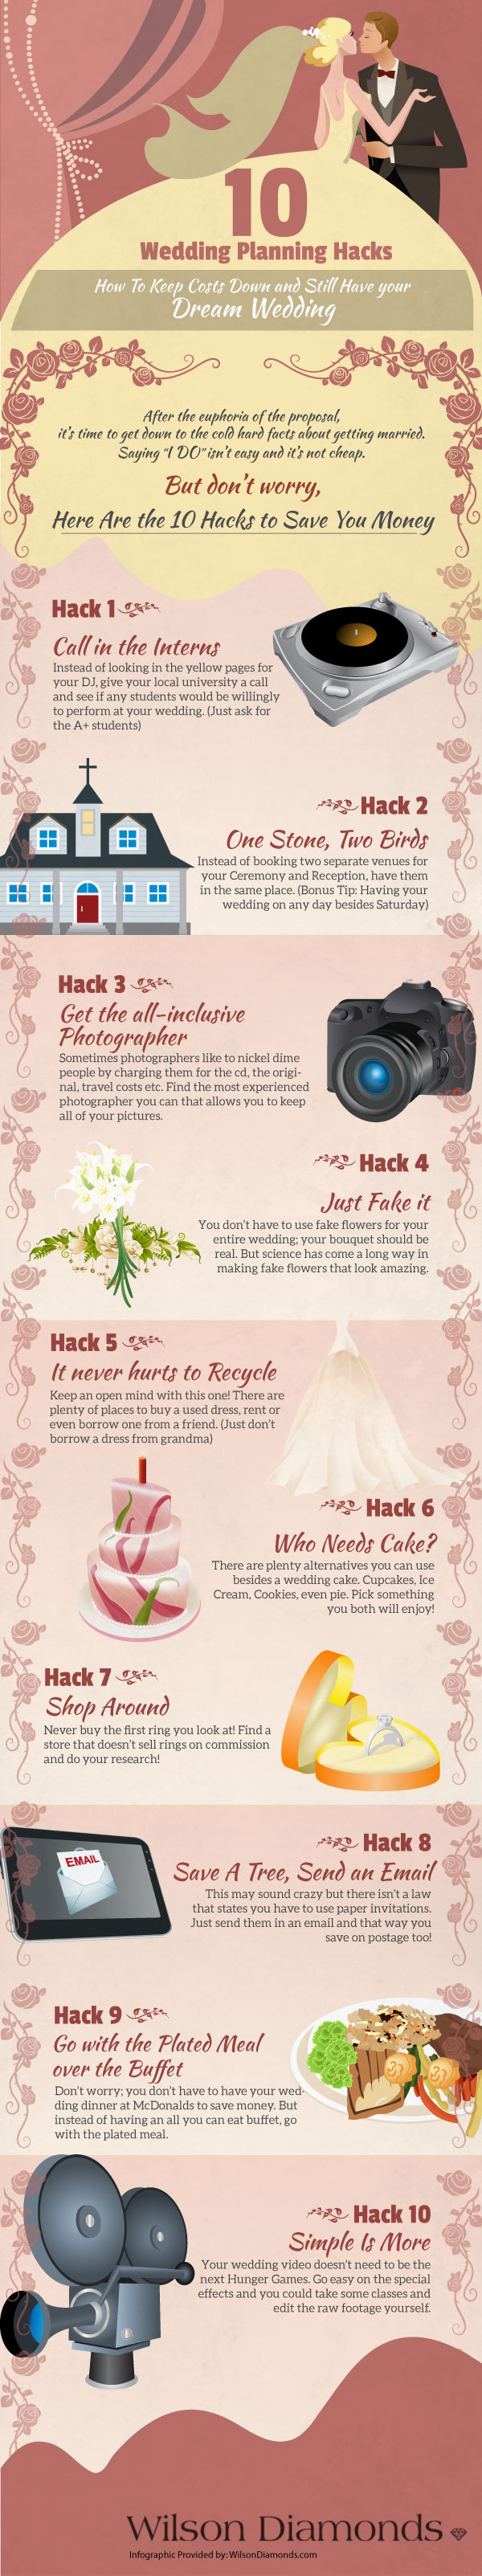 10 Wedding Planning Hacks